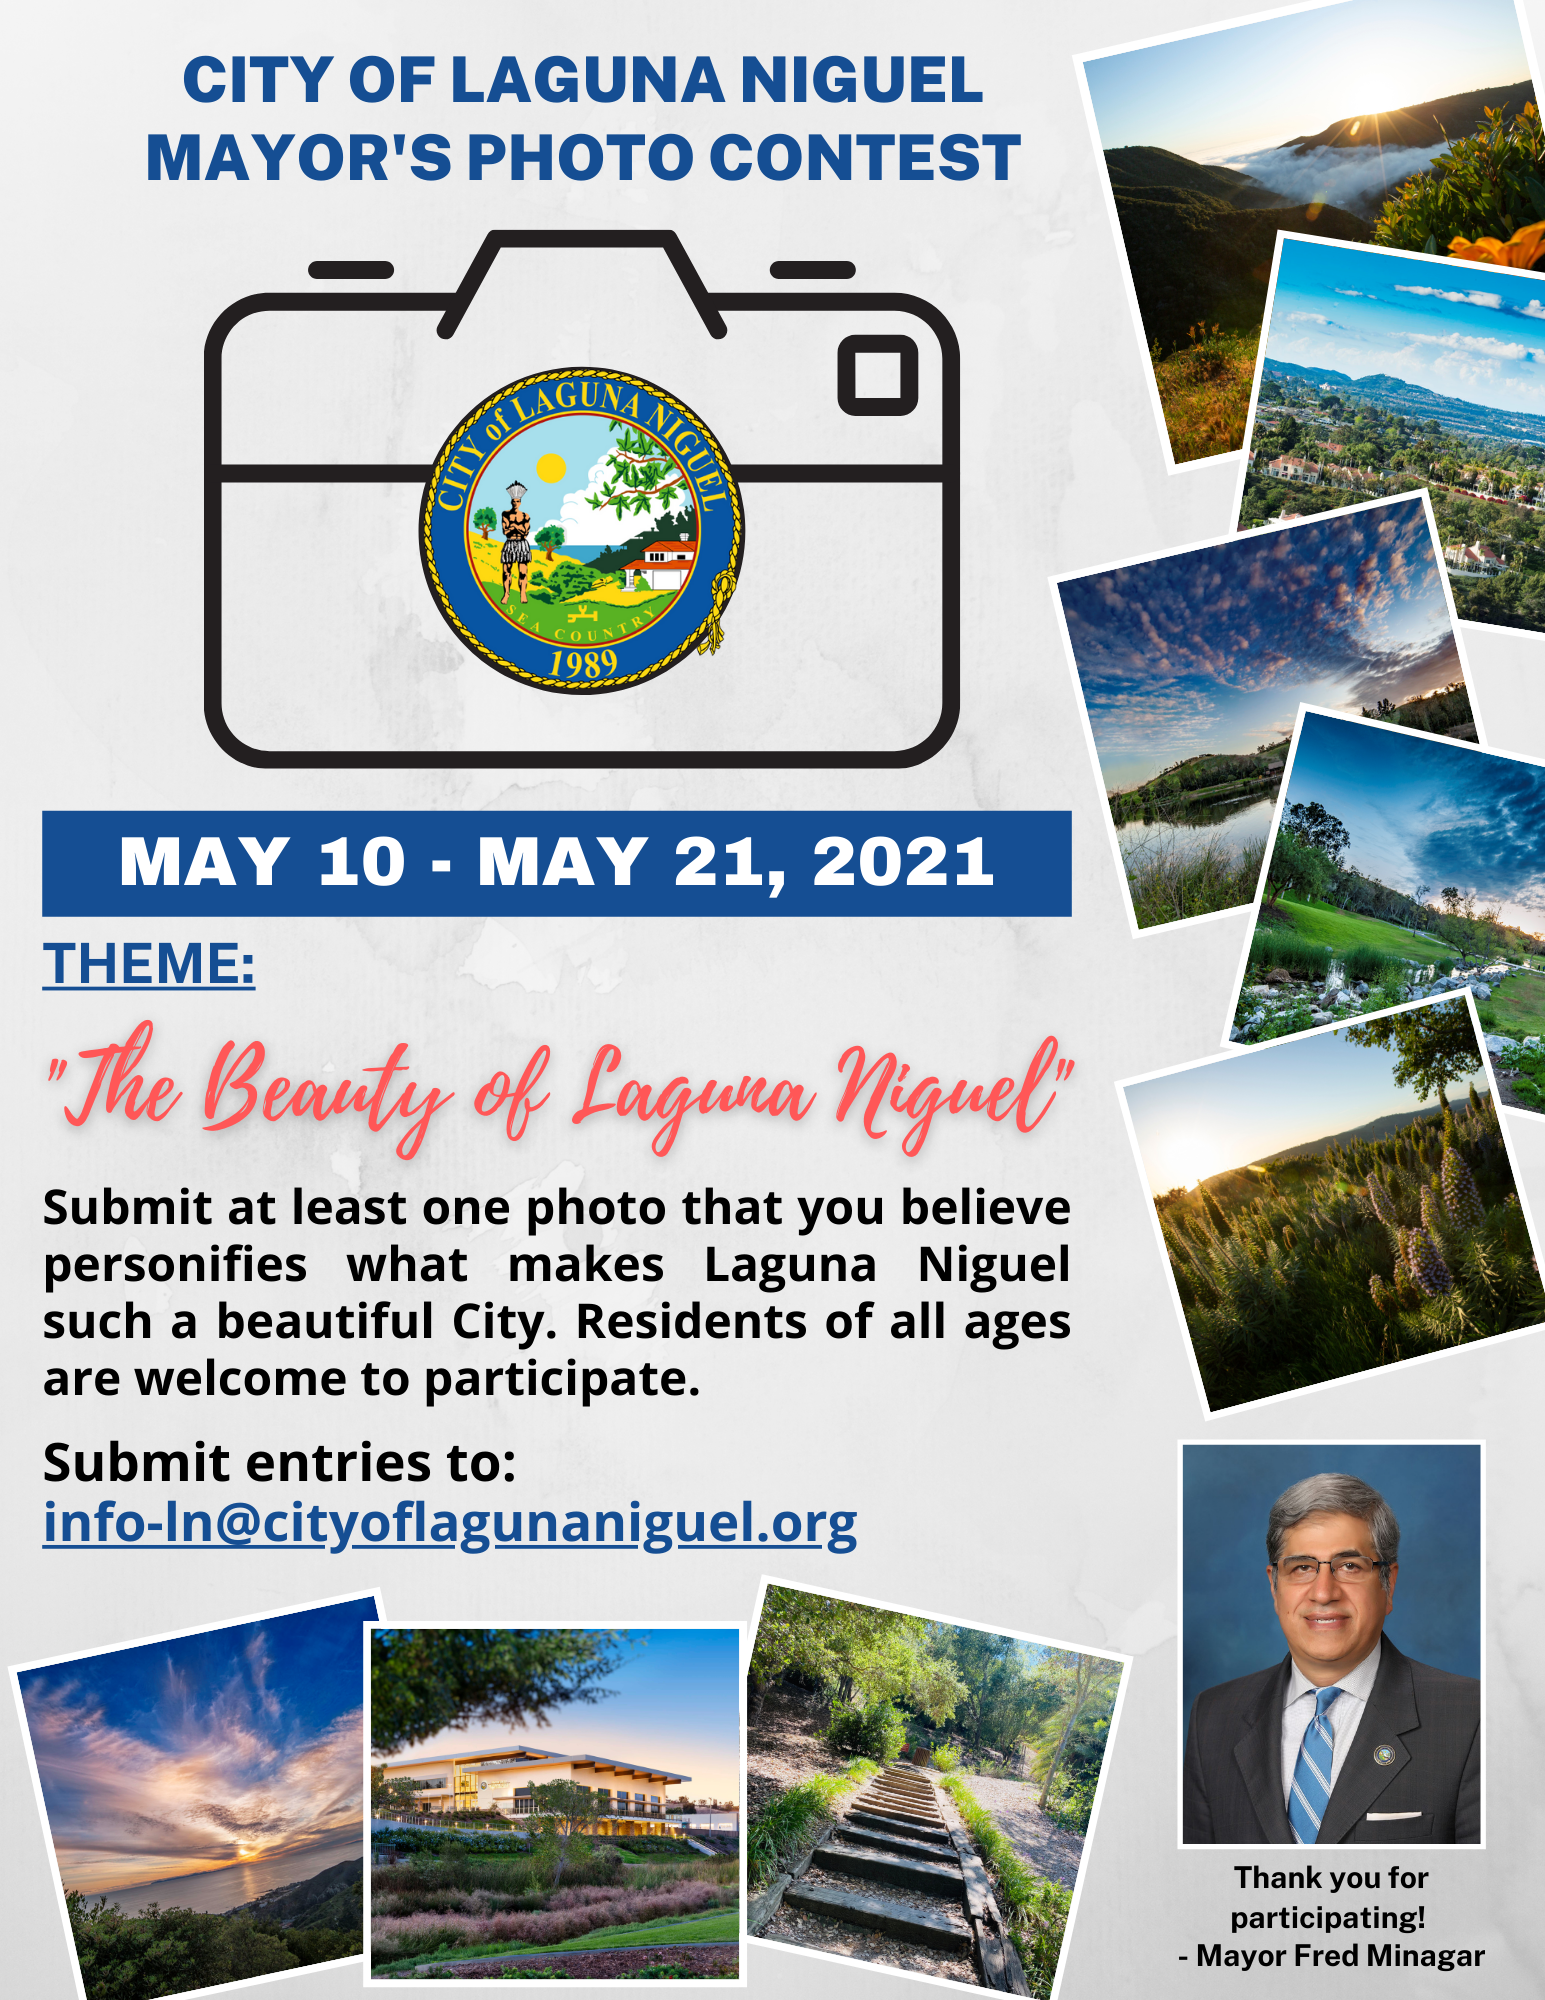 MAYOR'S PHOTO CONTEST